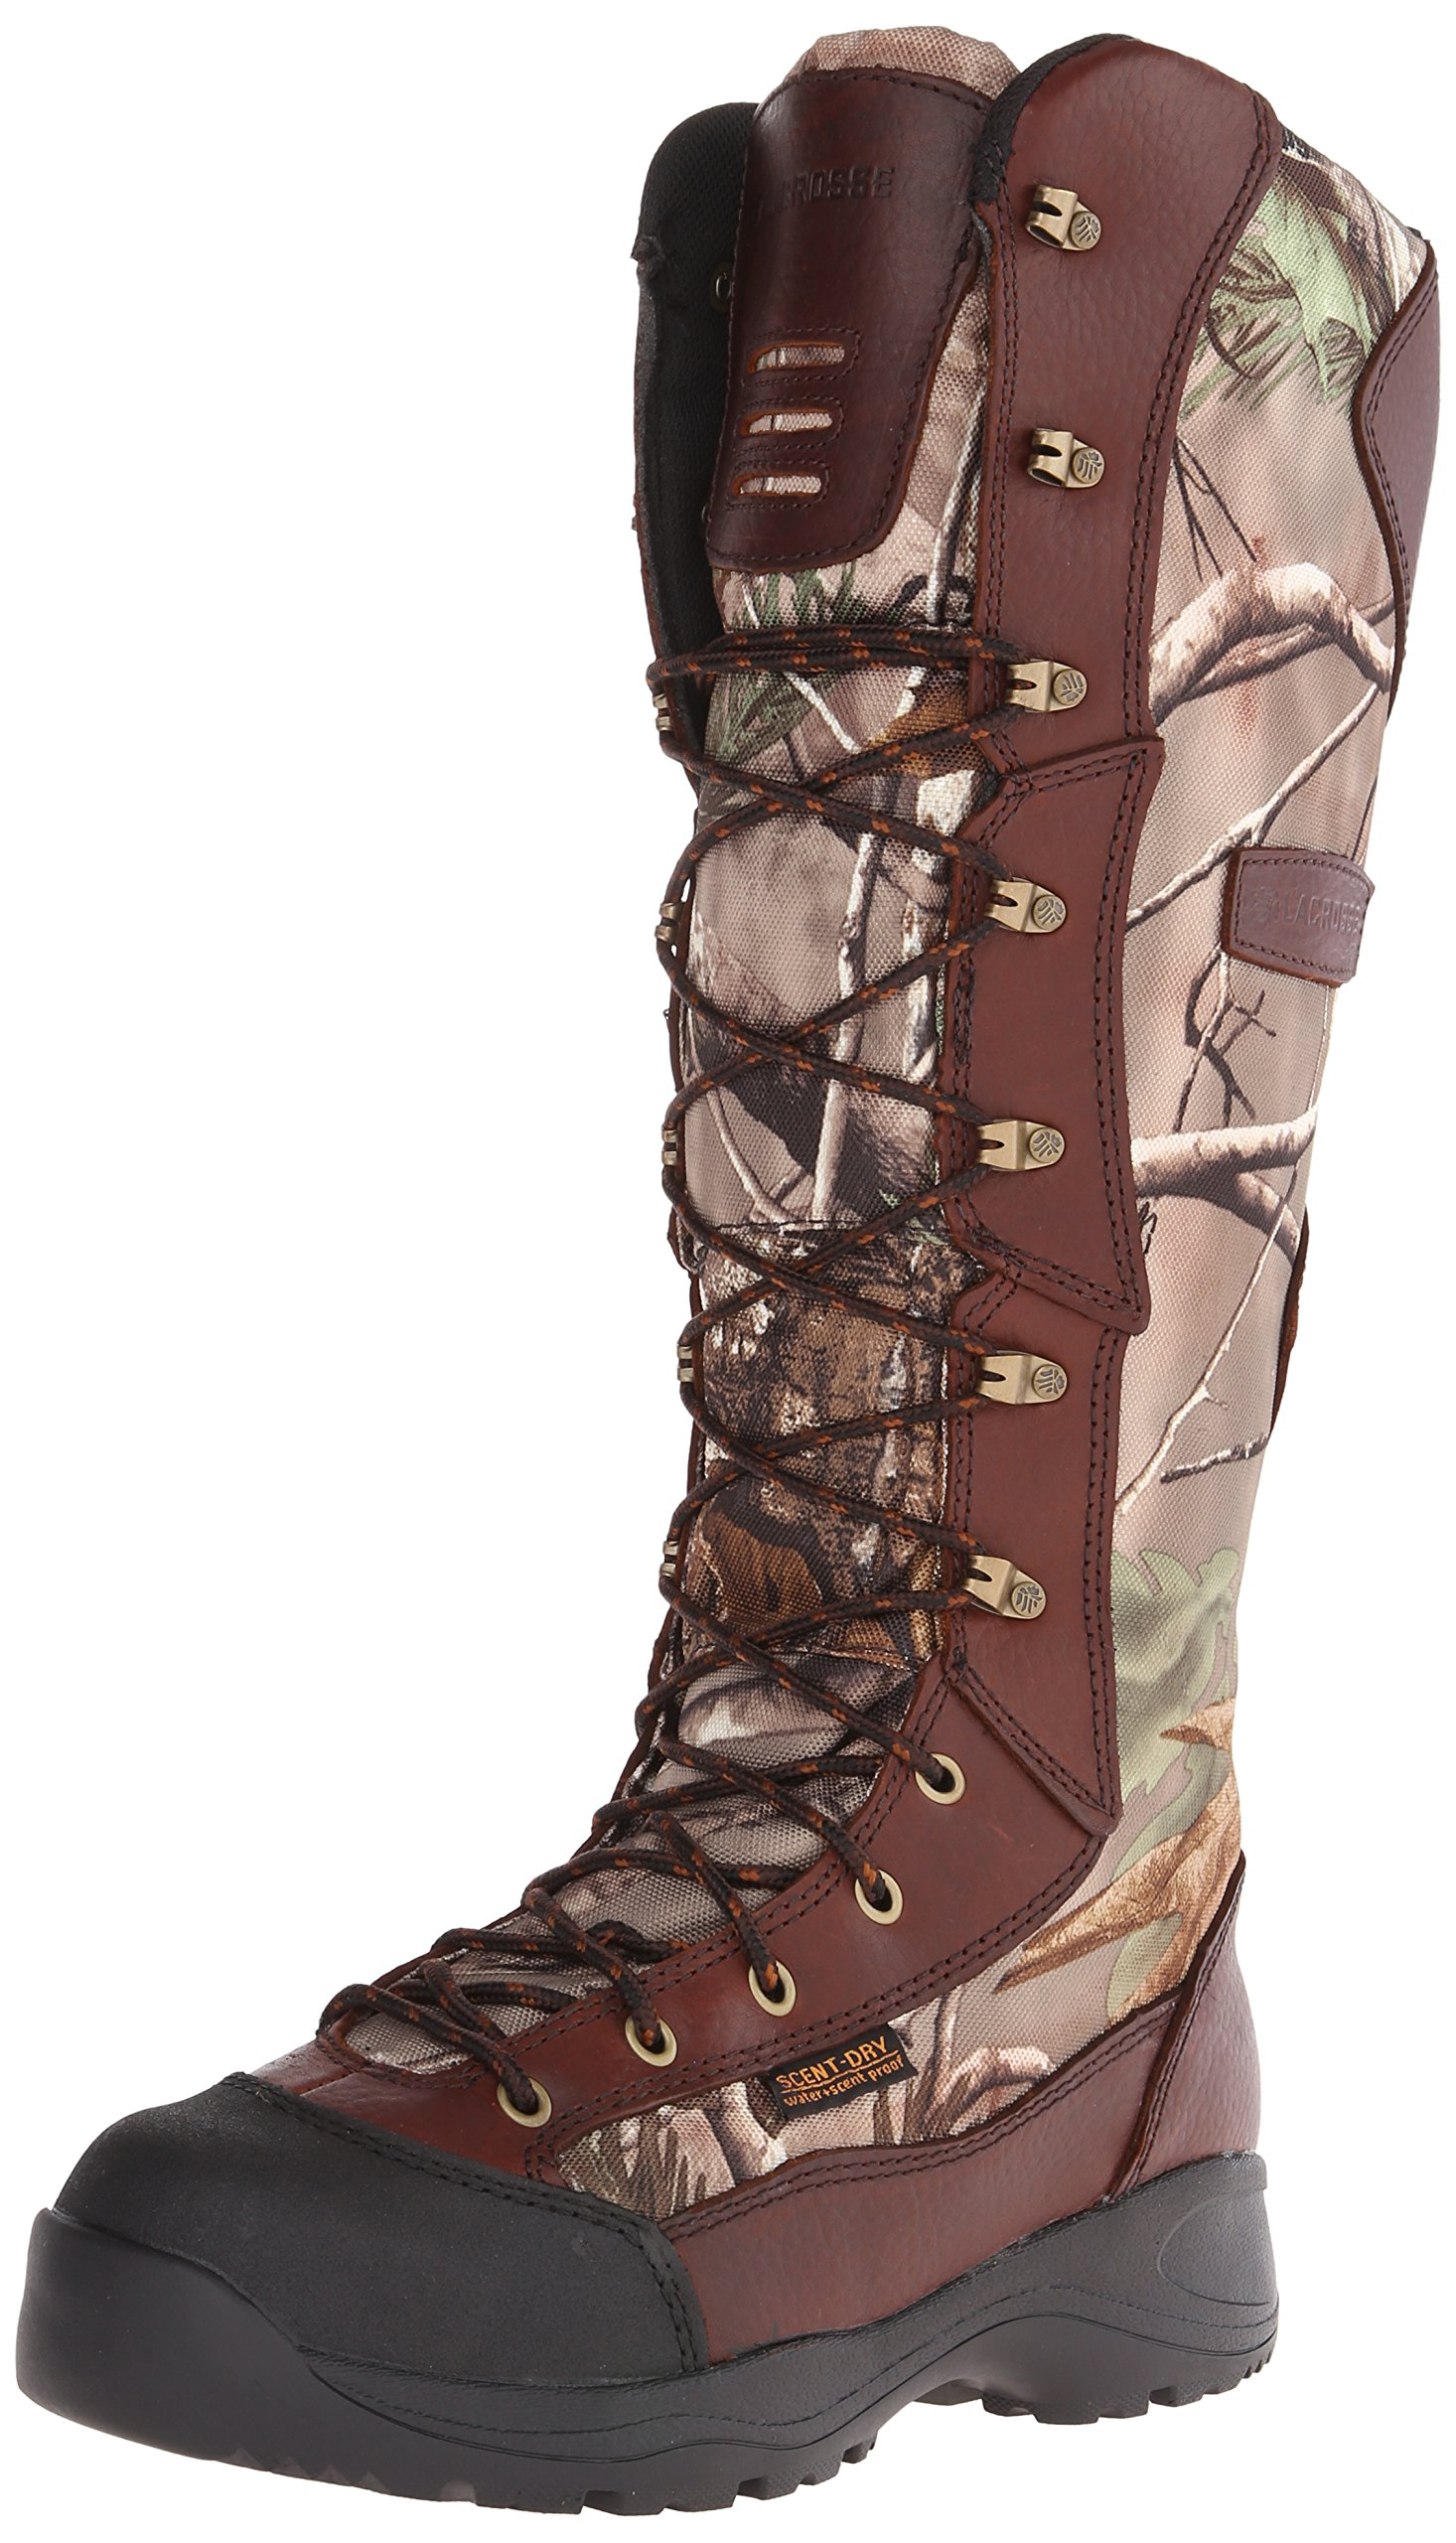 LaCrosse Men's Venom Scent APG HD Snake Boot,Realtree APG,8 M US